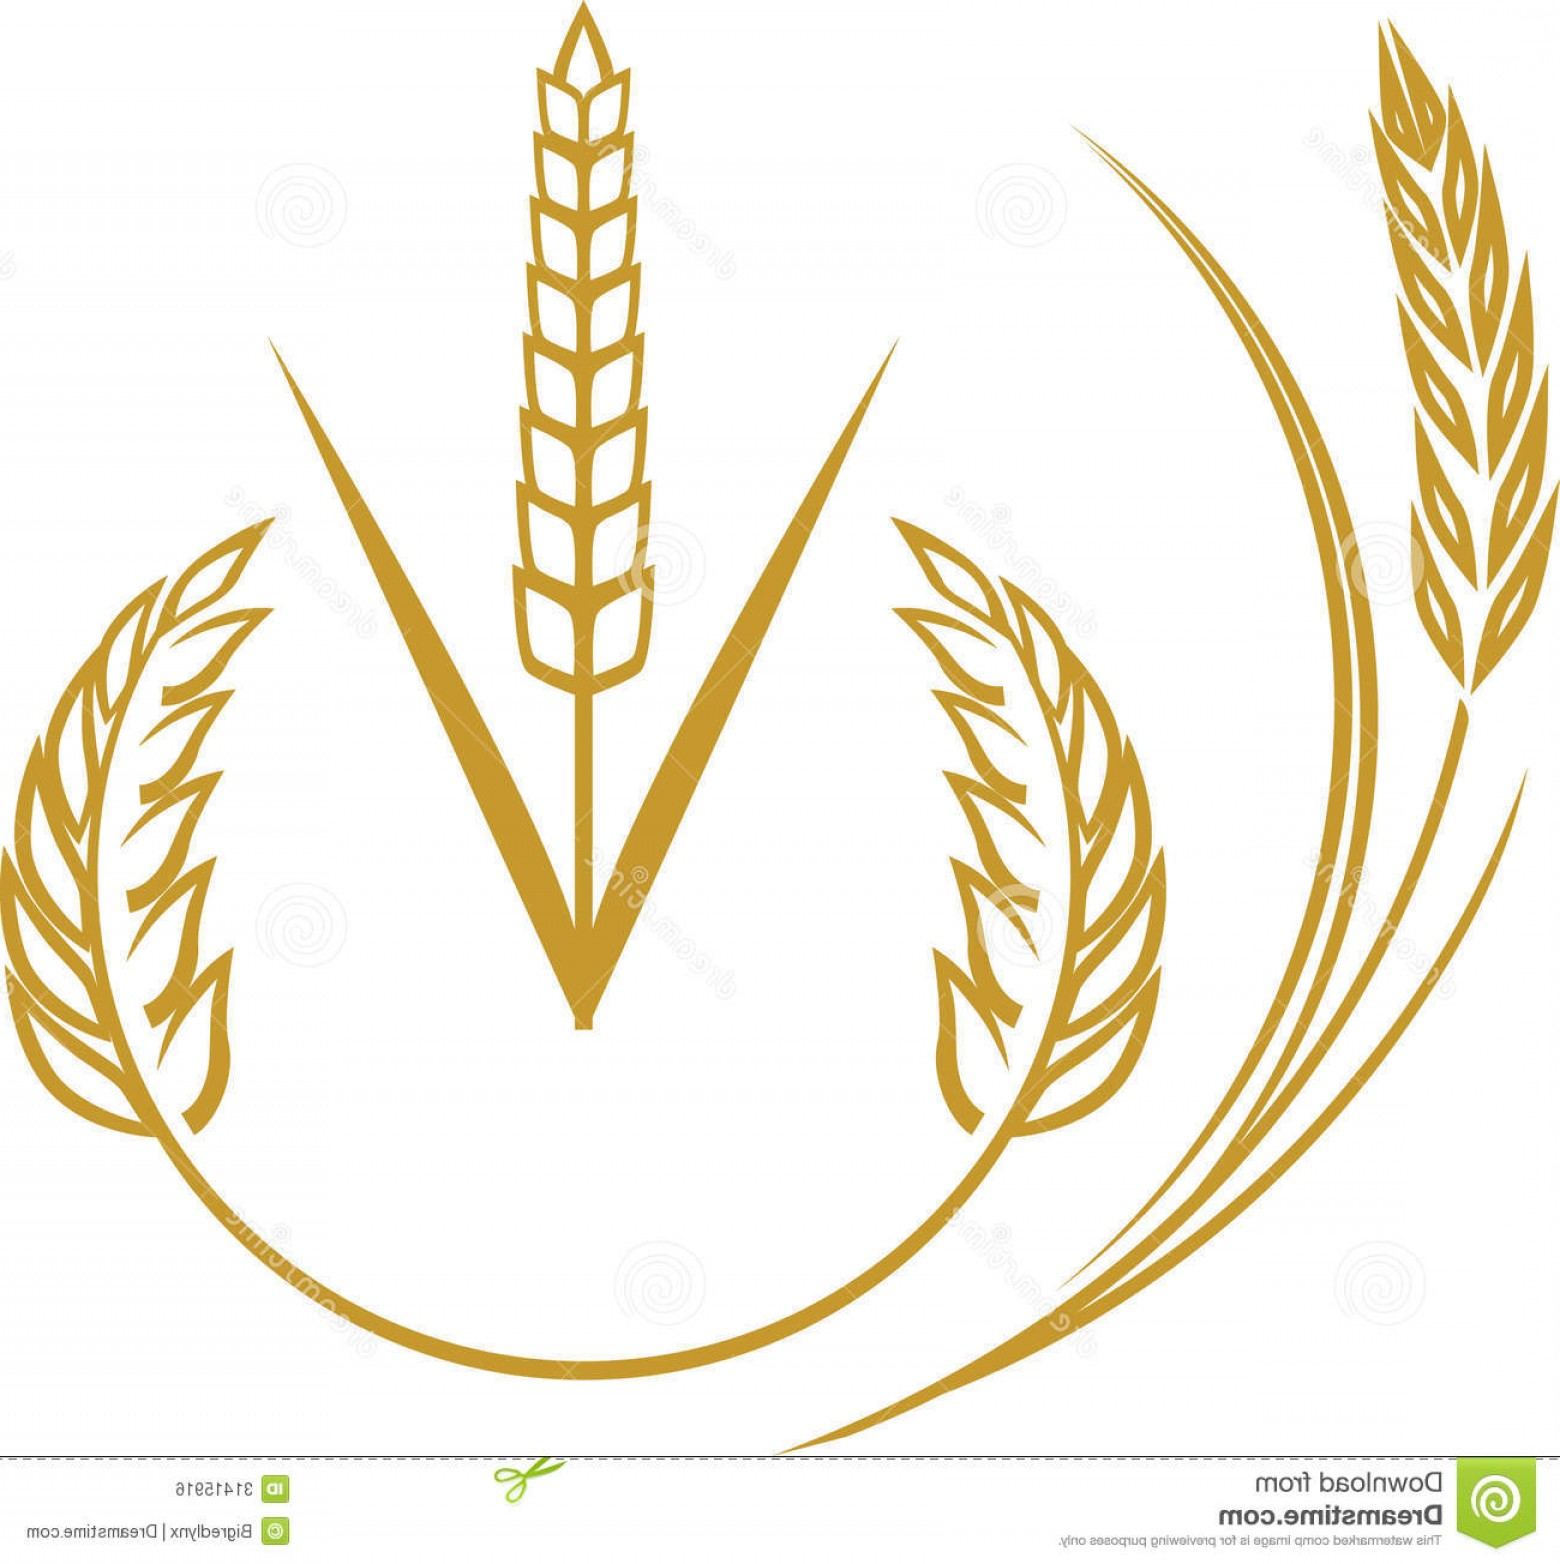 Wheat Flourishes Vector: Royalty Free Stock Image Wheat Elements Abstract Icon Symbol Clip Art Image